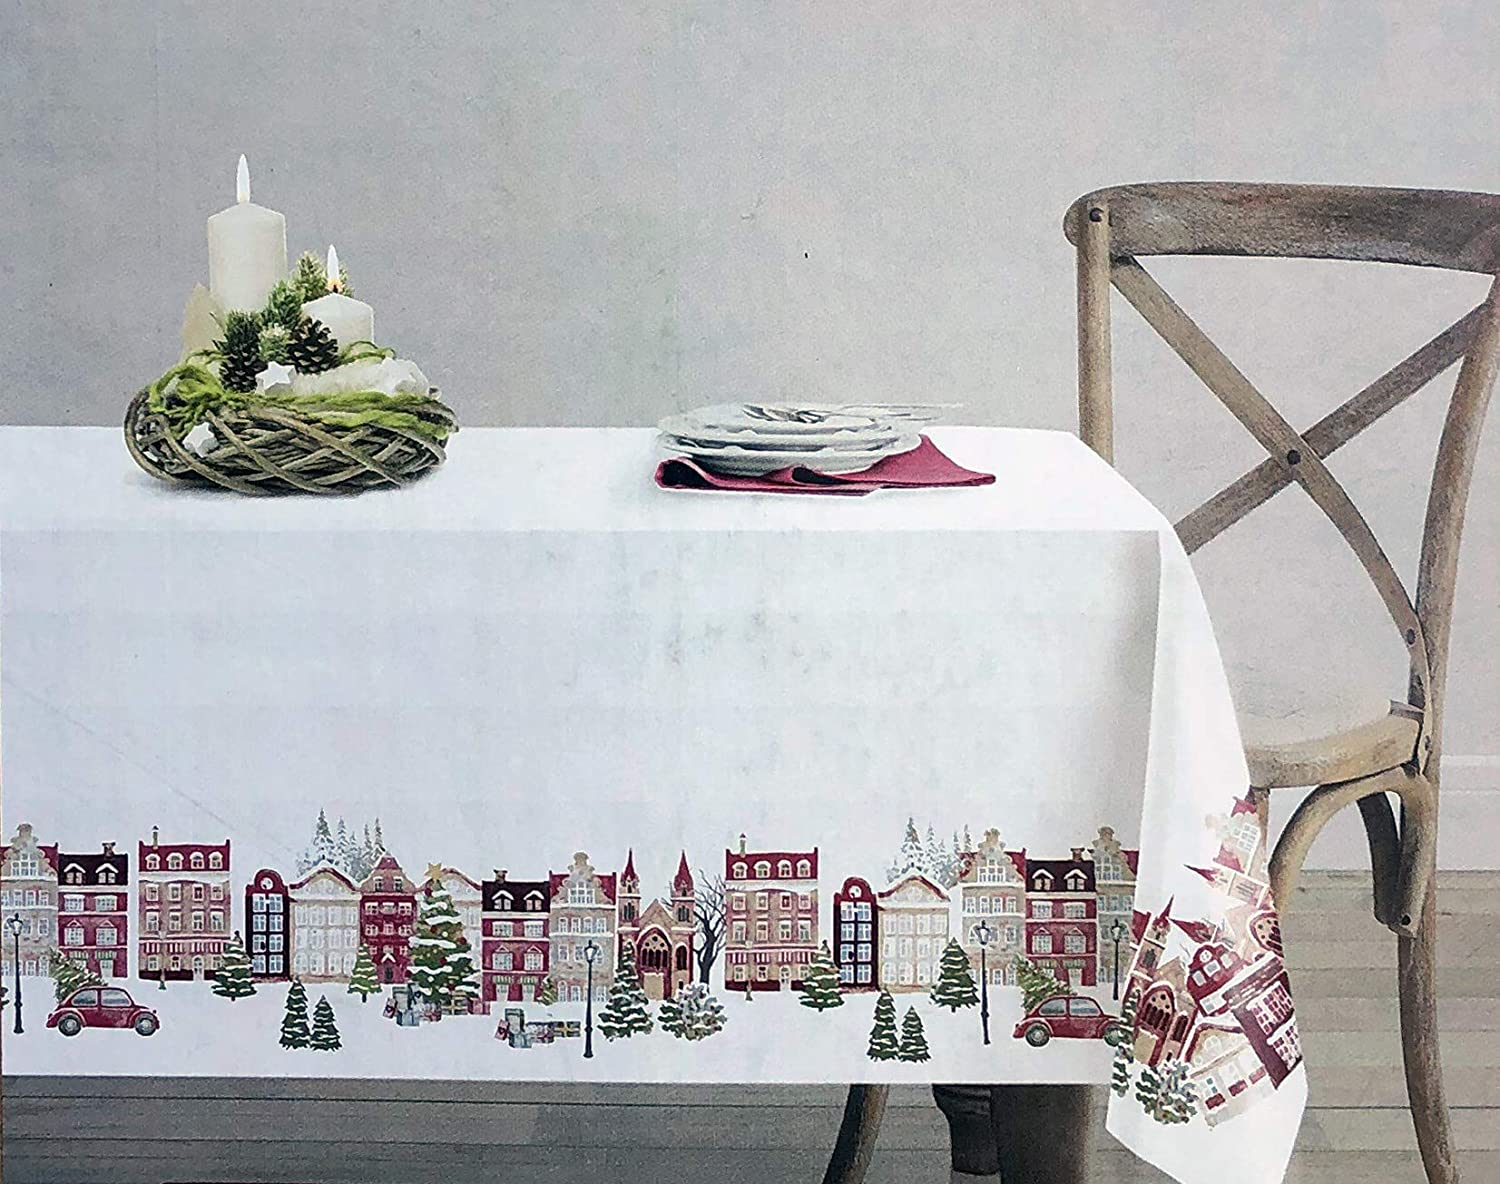 Santa's Workshop Christmas Holiday Fabric Tablecloth European Village Scene with Town Houses Christmas Trees Car Volkswagen - 70 Inches Round